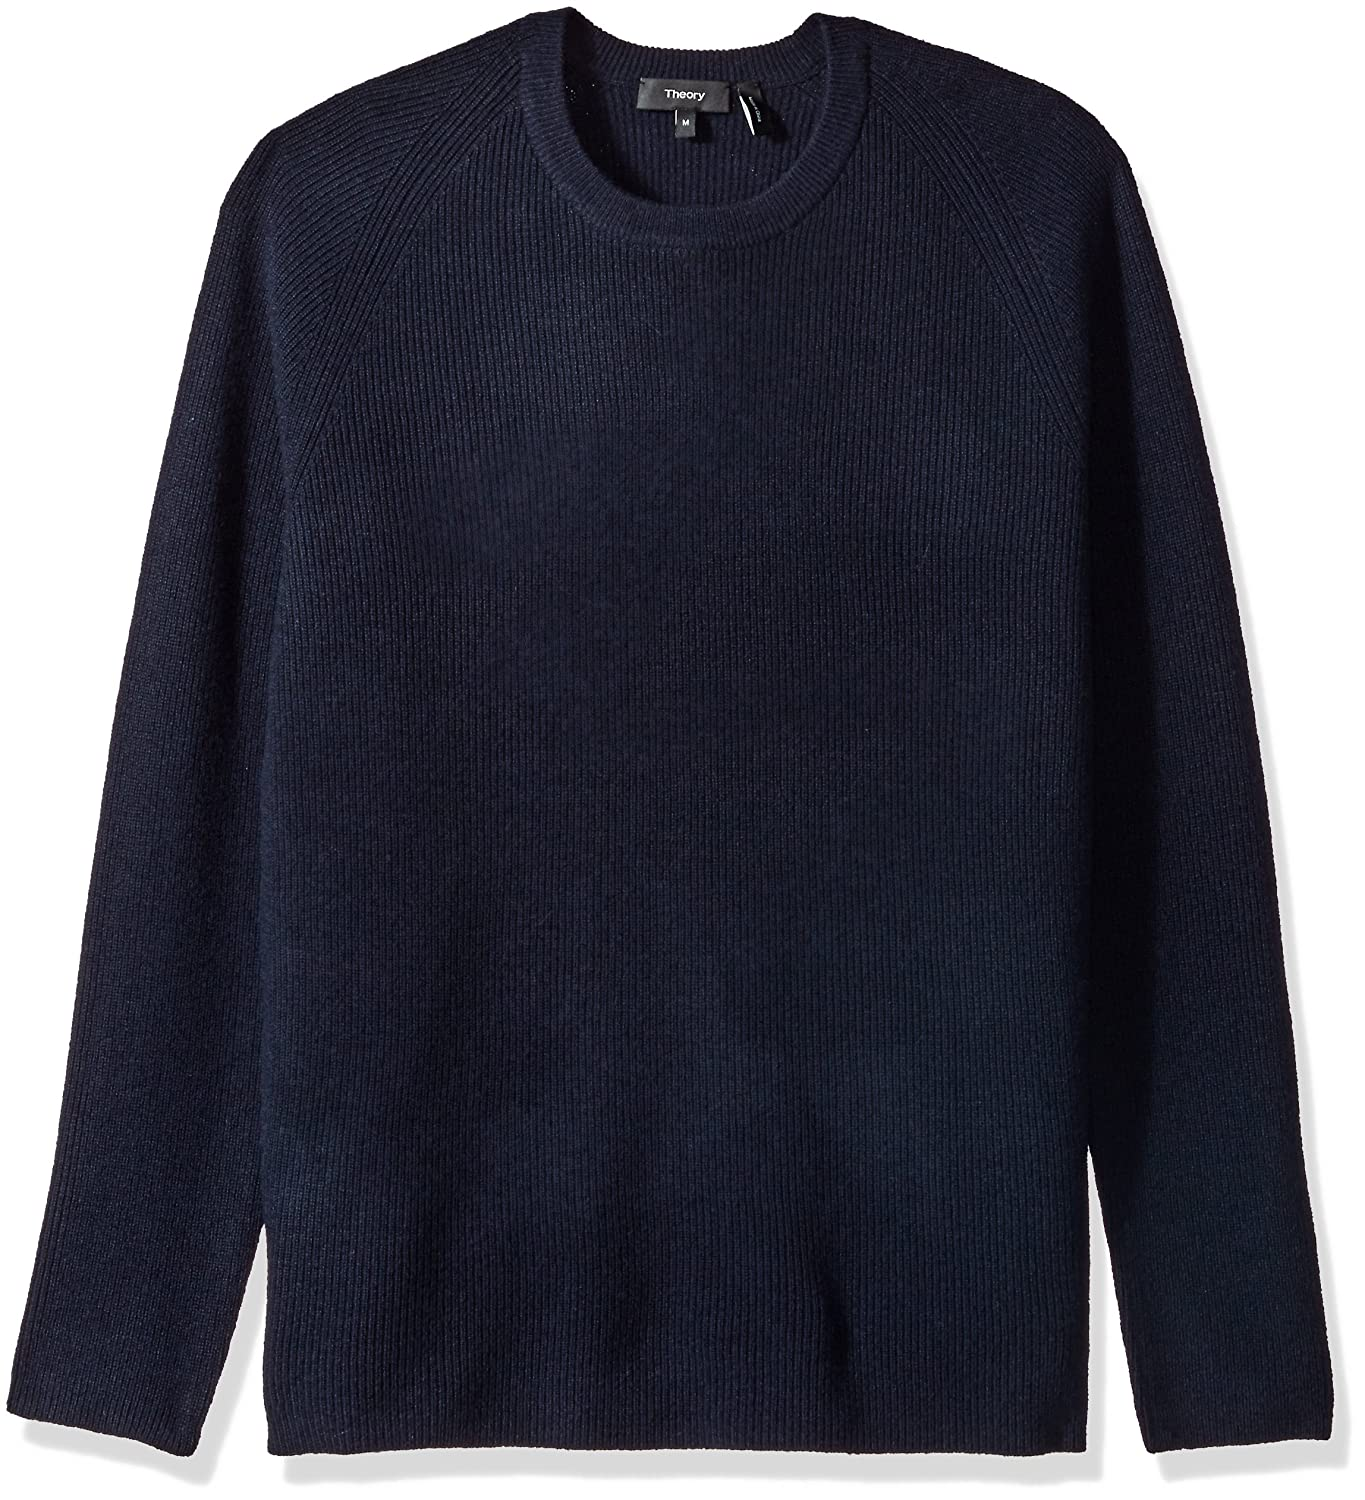 9a32133bf2 Amazon.com: Theory Men's Cashmere Sweater: Clothing